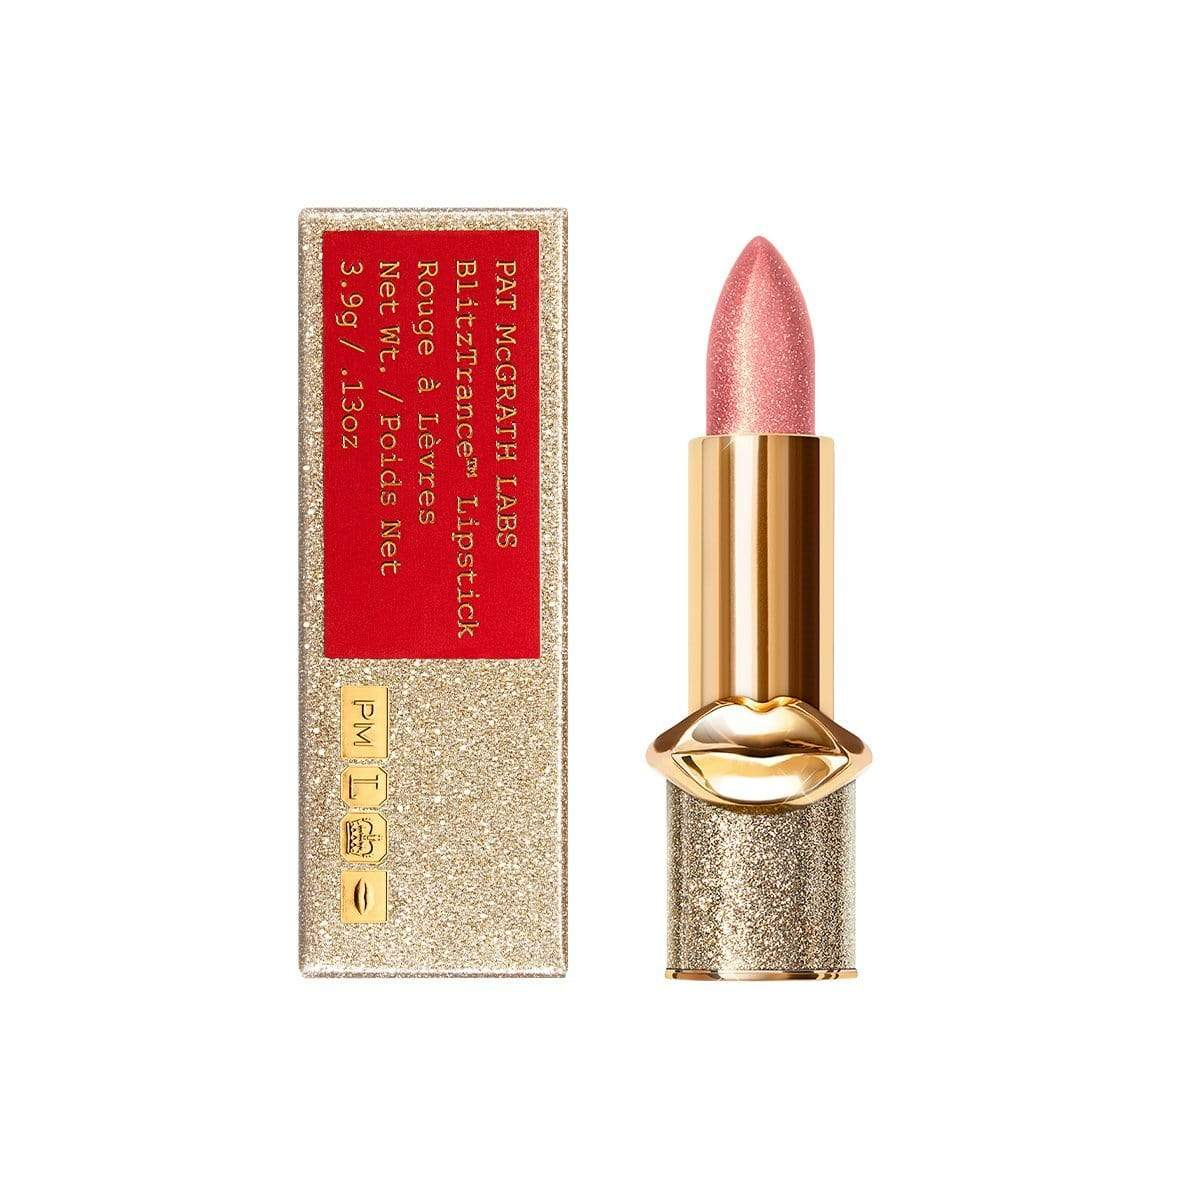 PAT MCGRATH LABS Lipstick PAT MCGRATH LABS BlitzTrance™ Lipstick - Nude Romantique, 3.7g